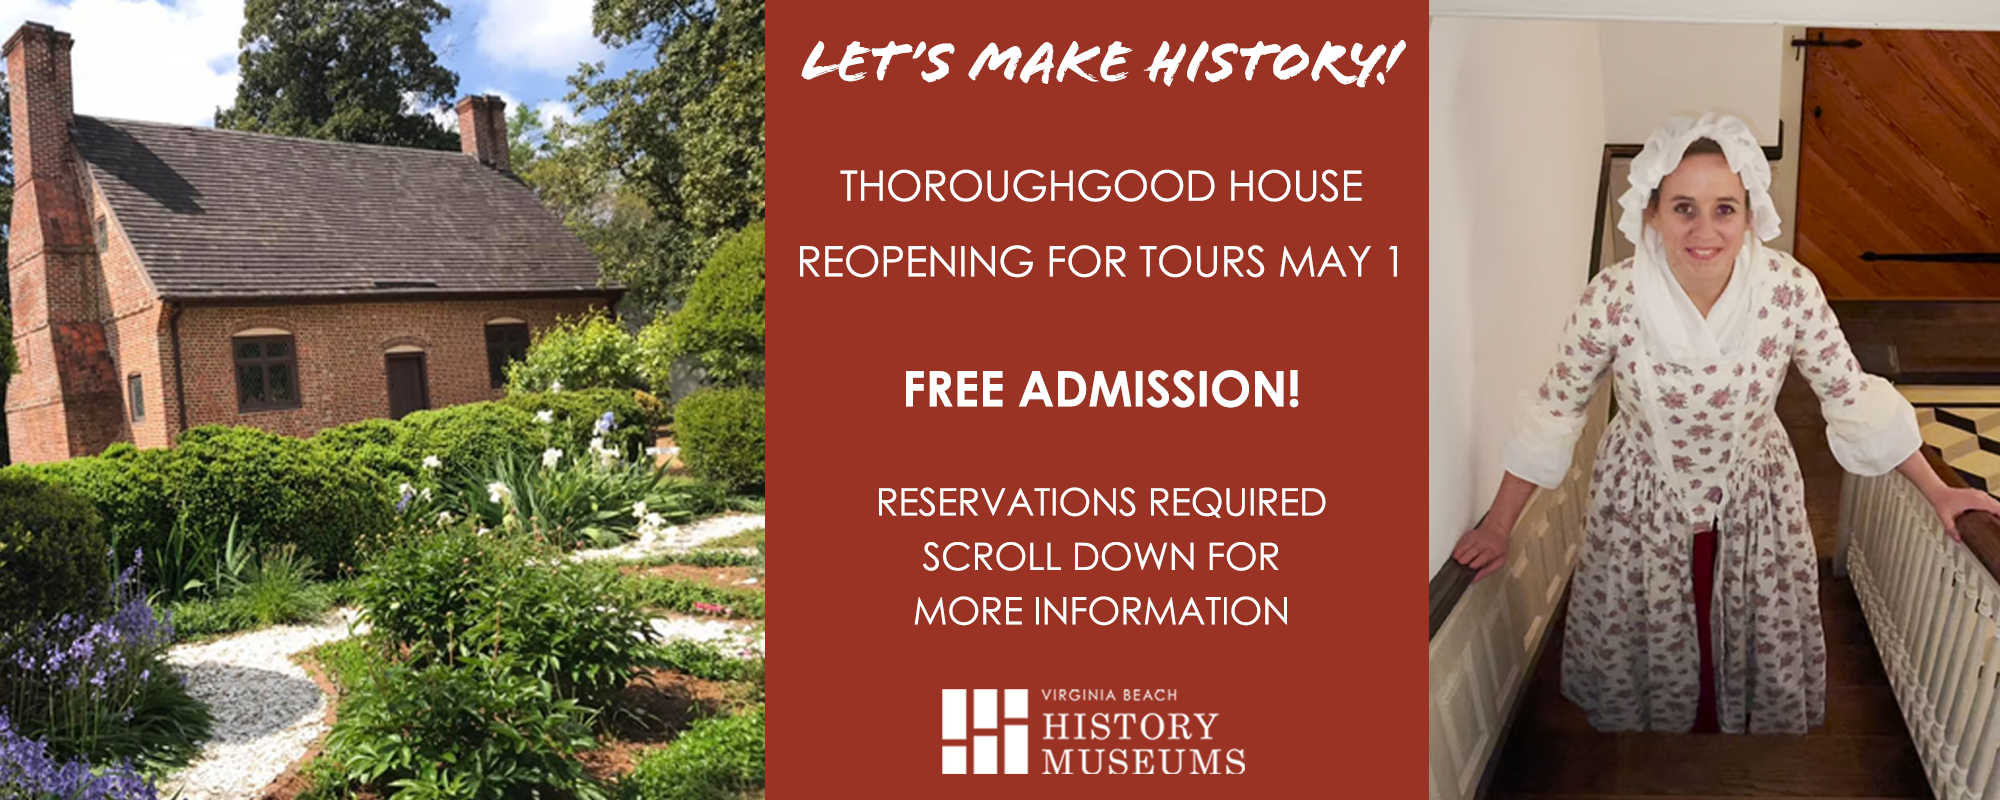 Thoroughgood House Reopening May 1